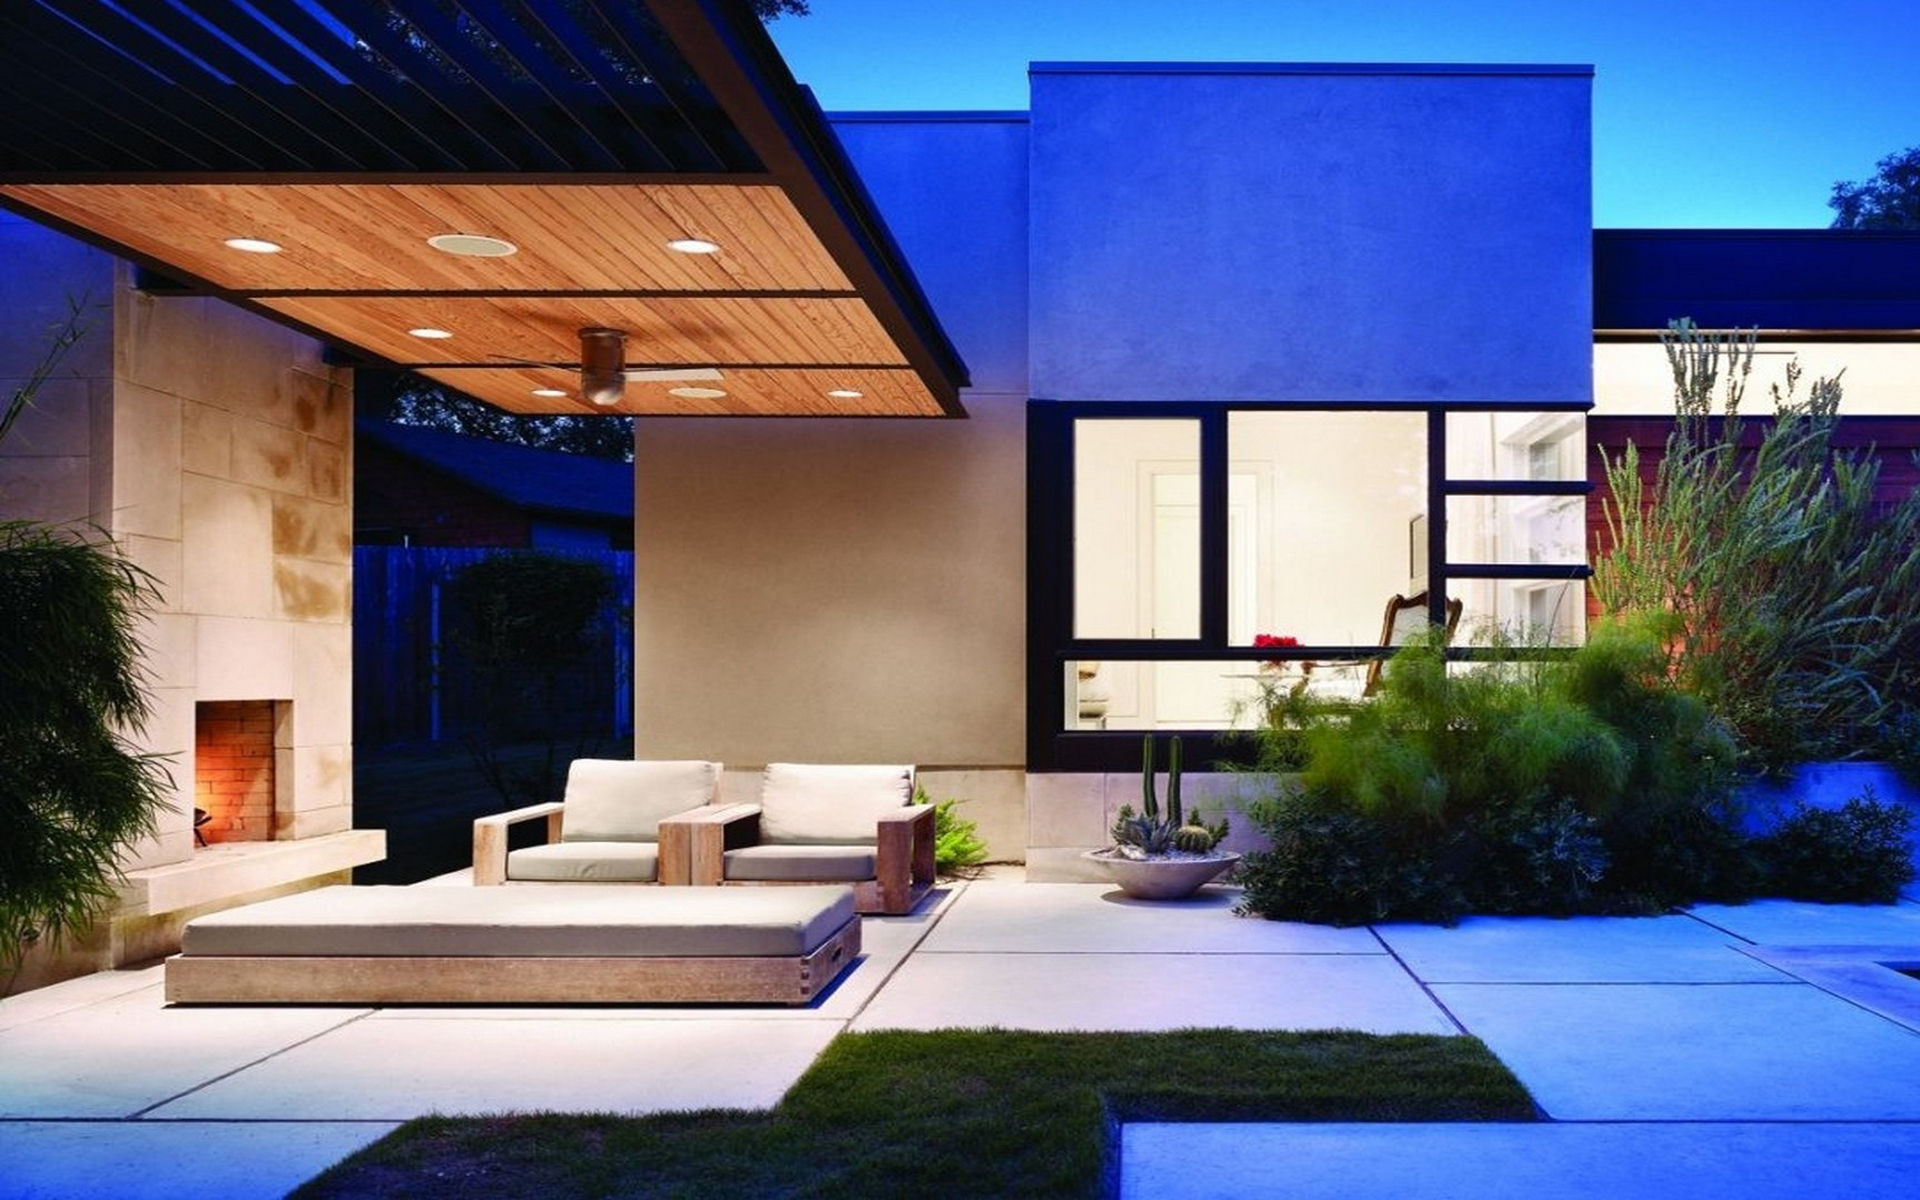 Modern house architecture idea with exterior living area